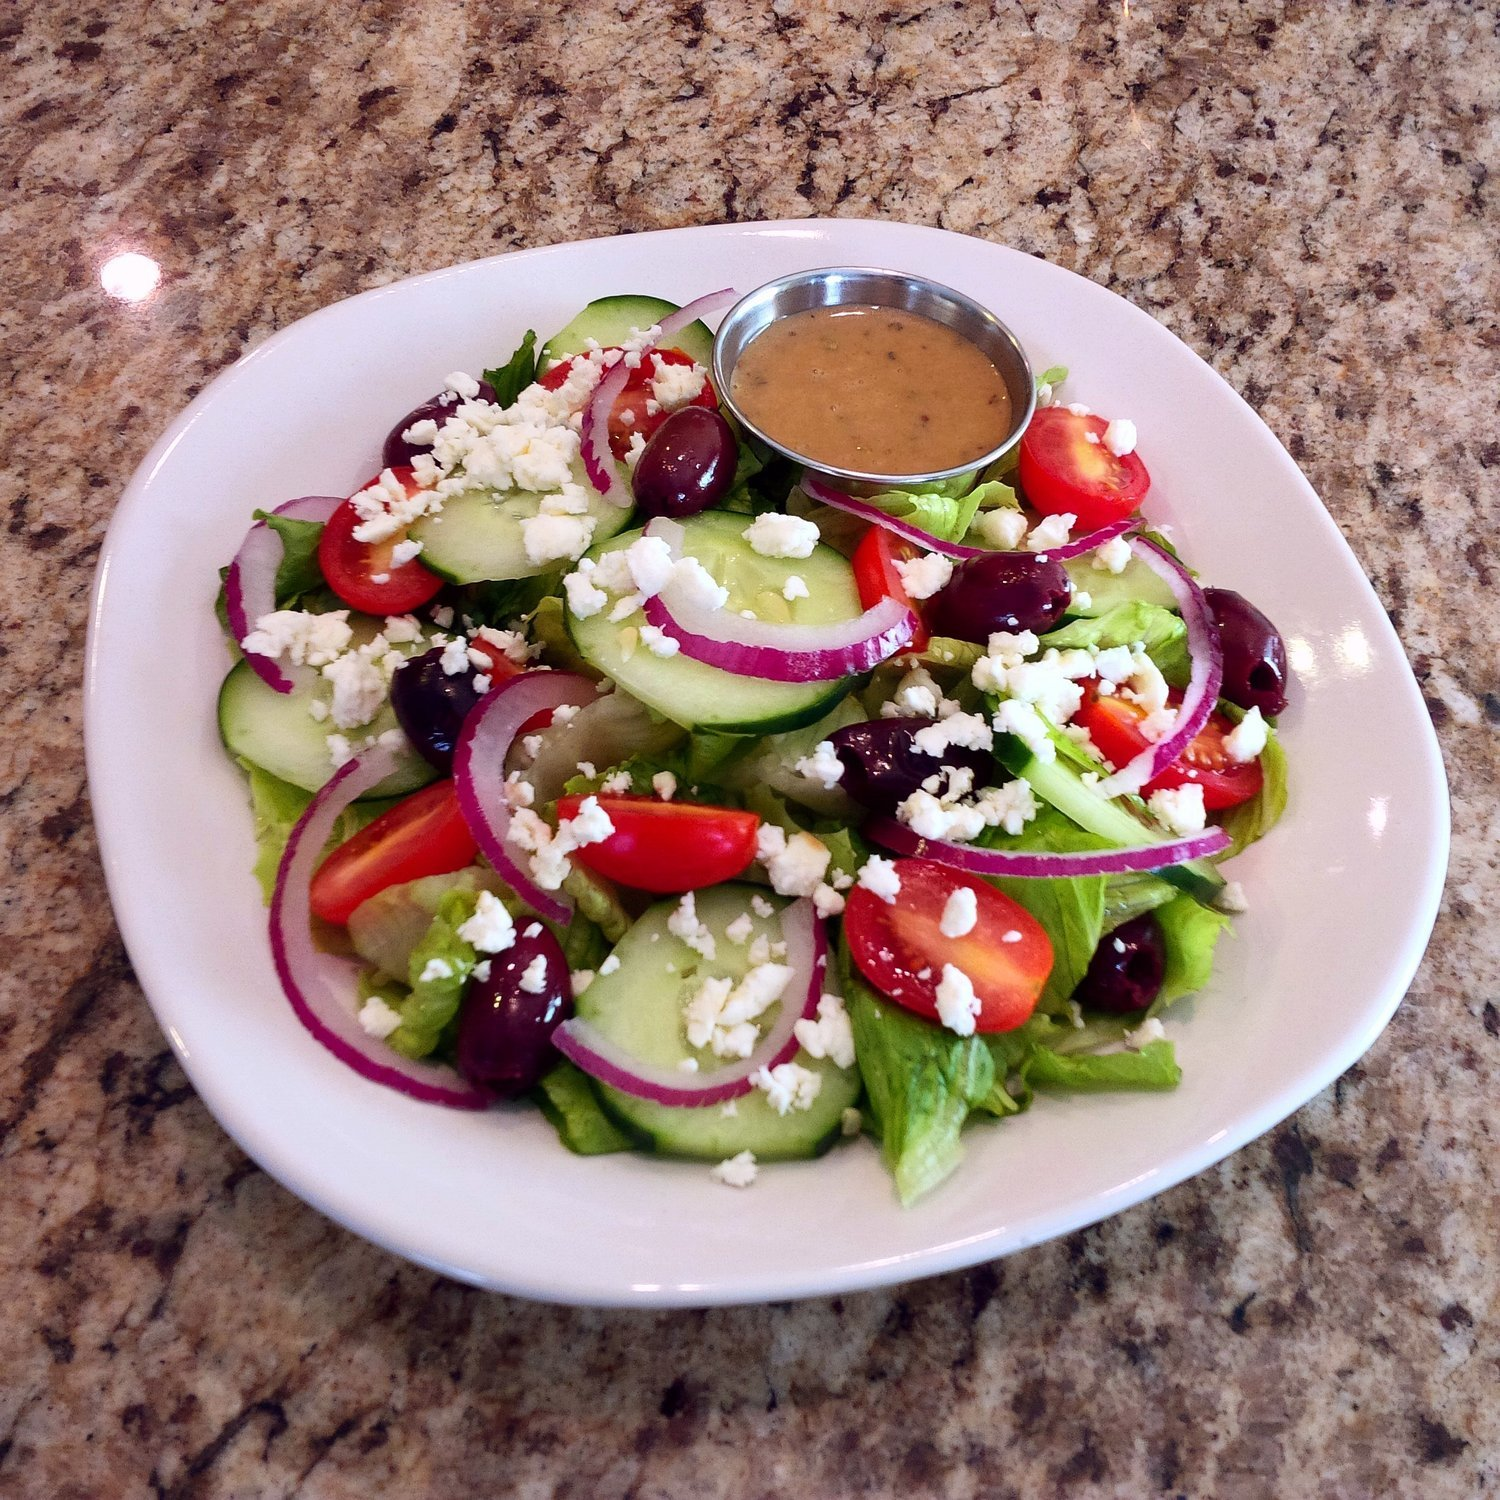 Family Meal Deal - Organic Greek Salad w/ Grilled Chicken